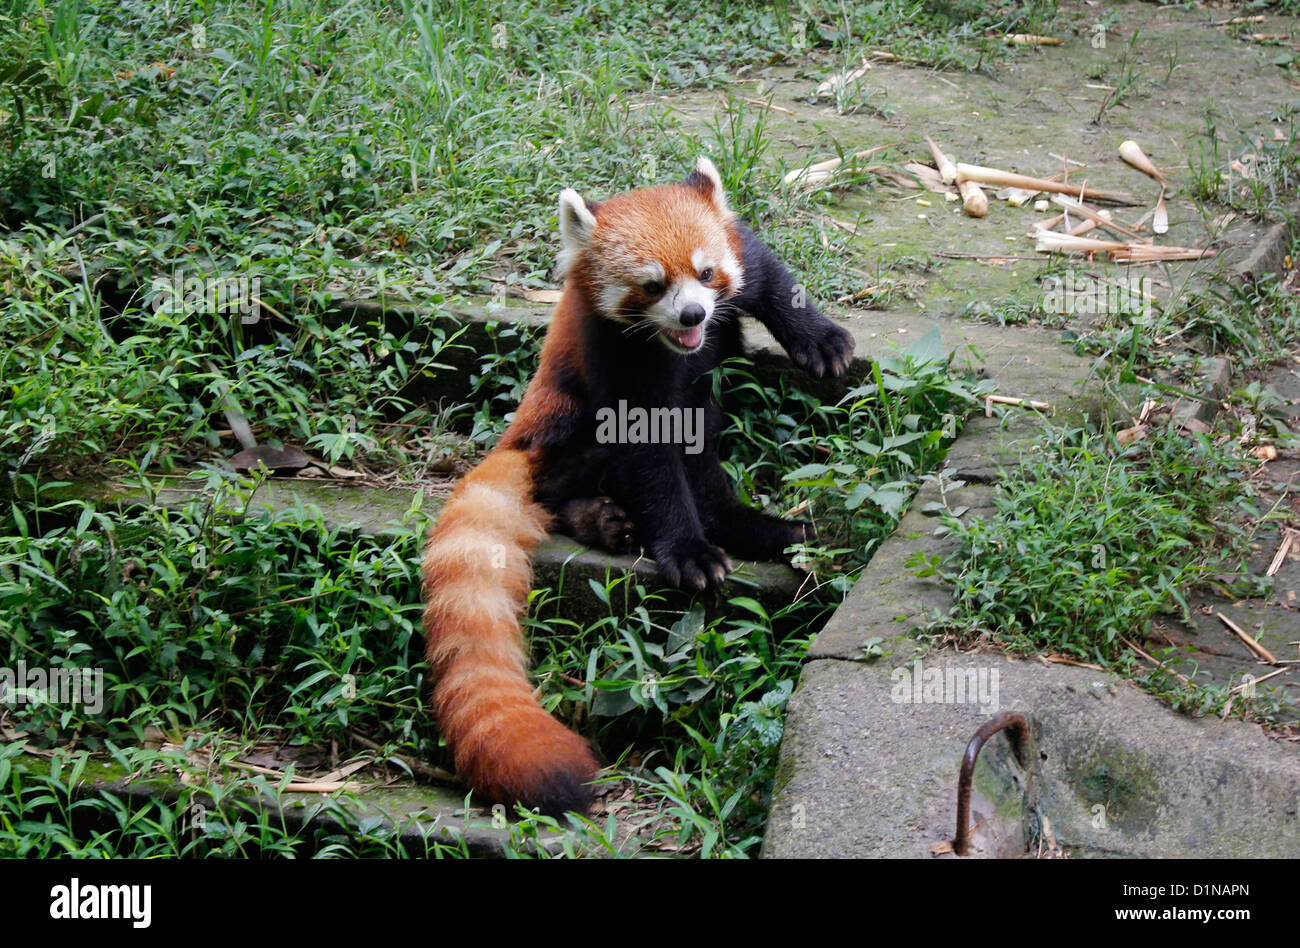 red panda also called lesser panda and red cat-bear, arboreal mammal  chinese panda Chengdu Panda Breeding and research - Stock Image